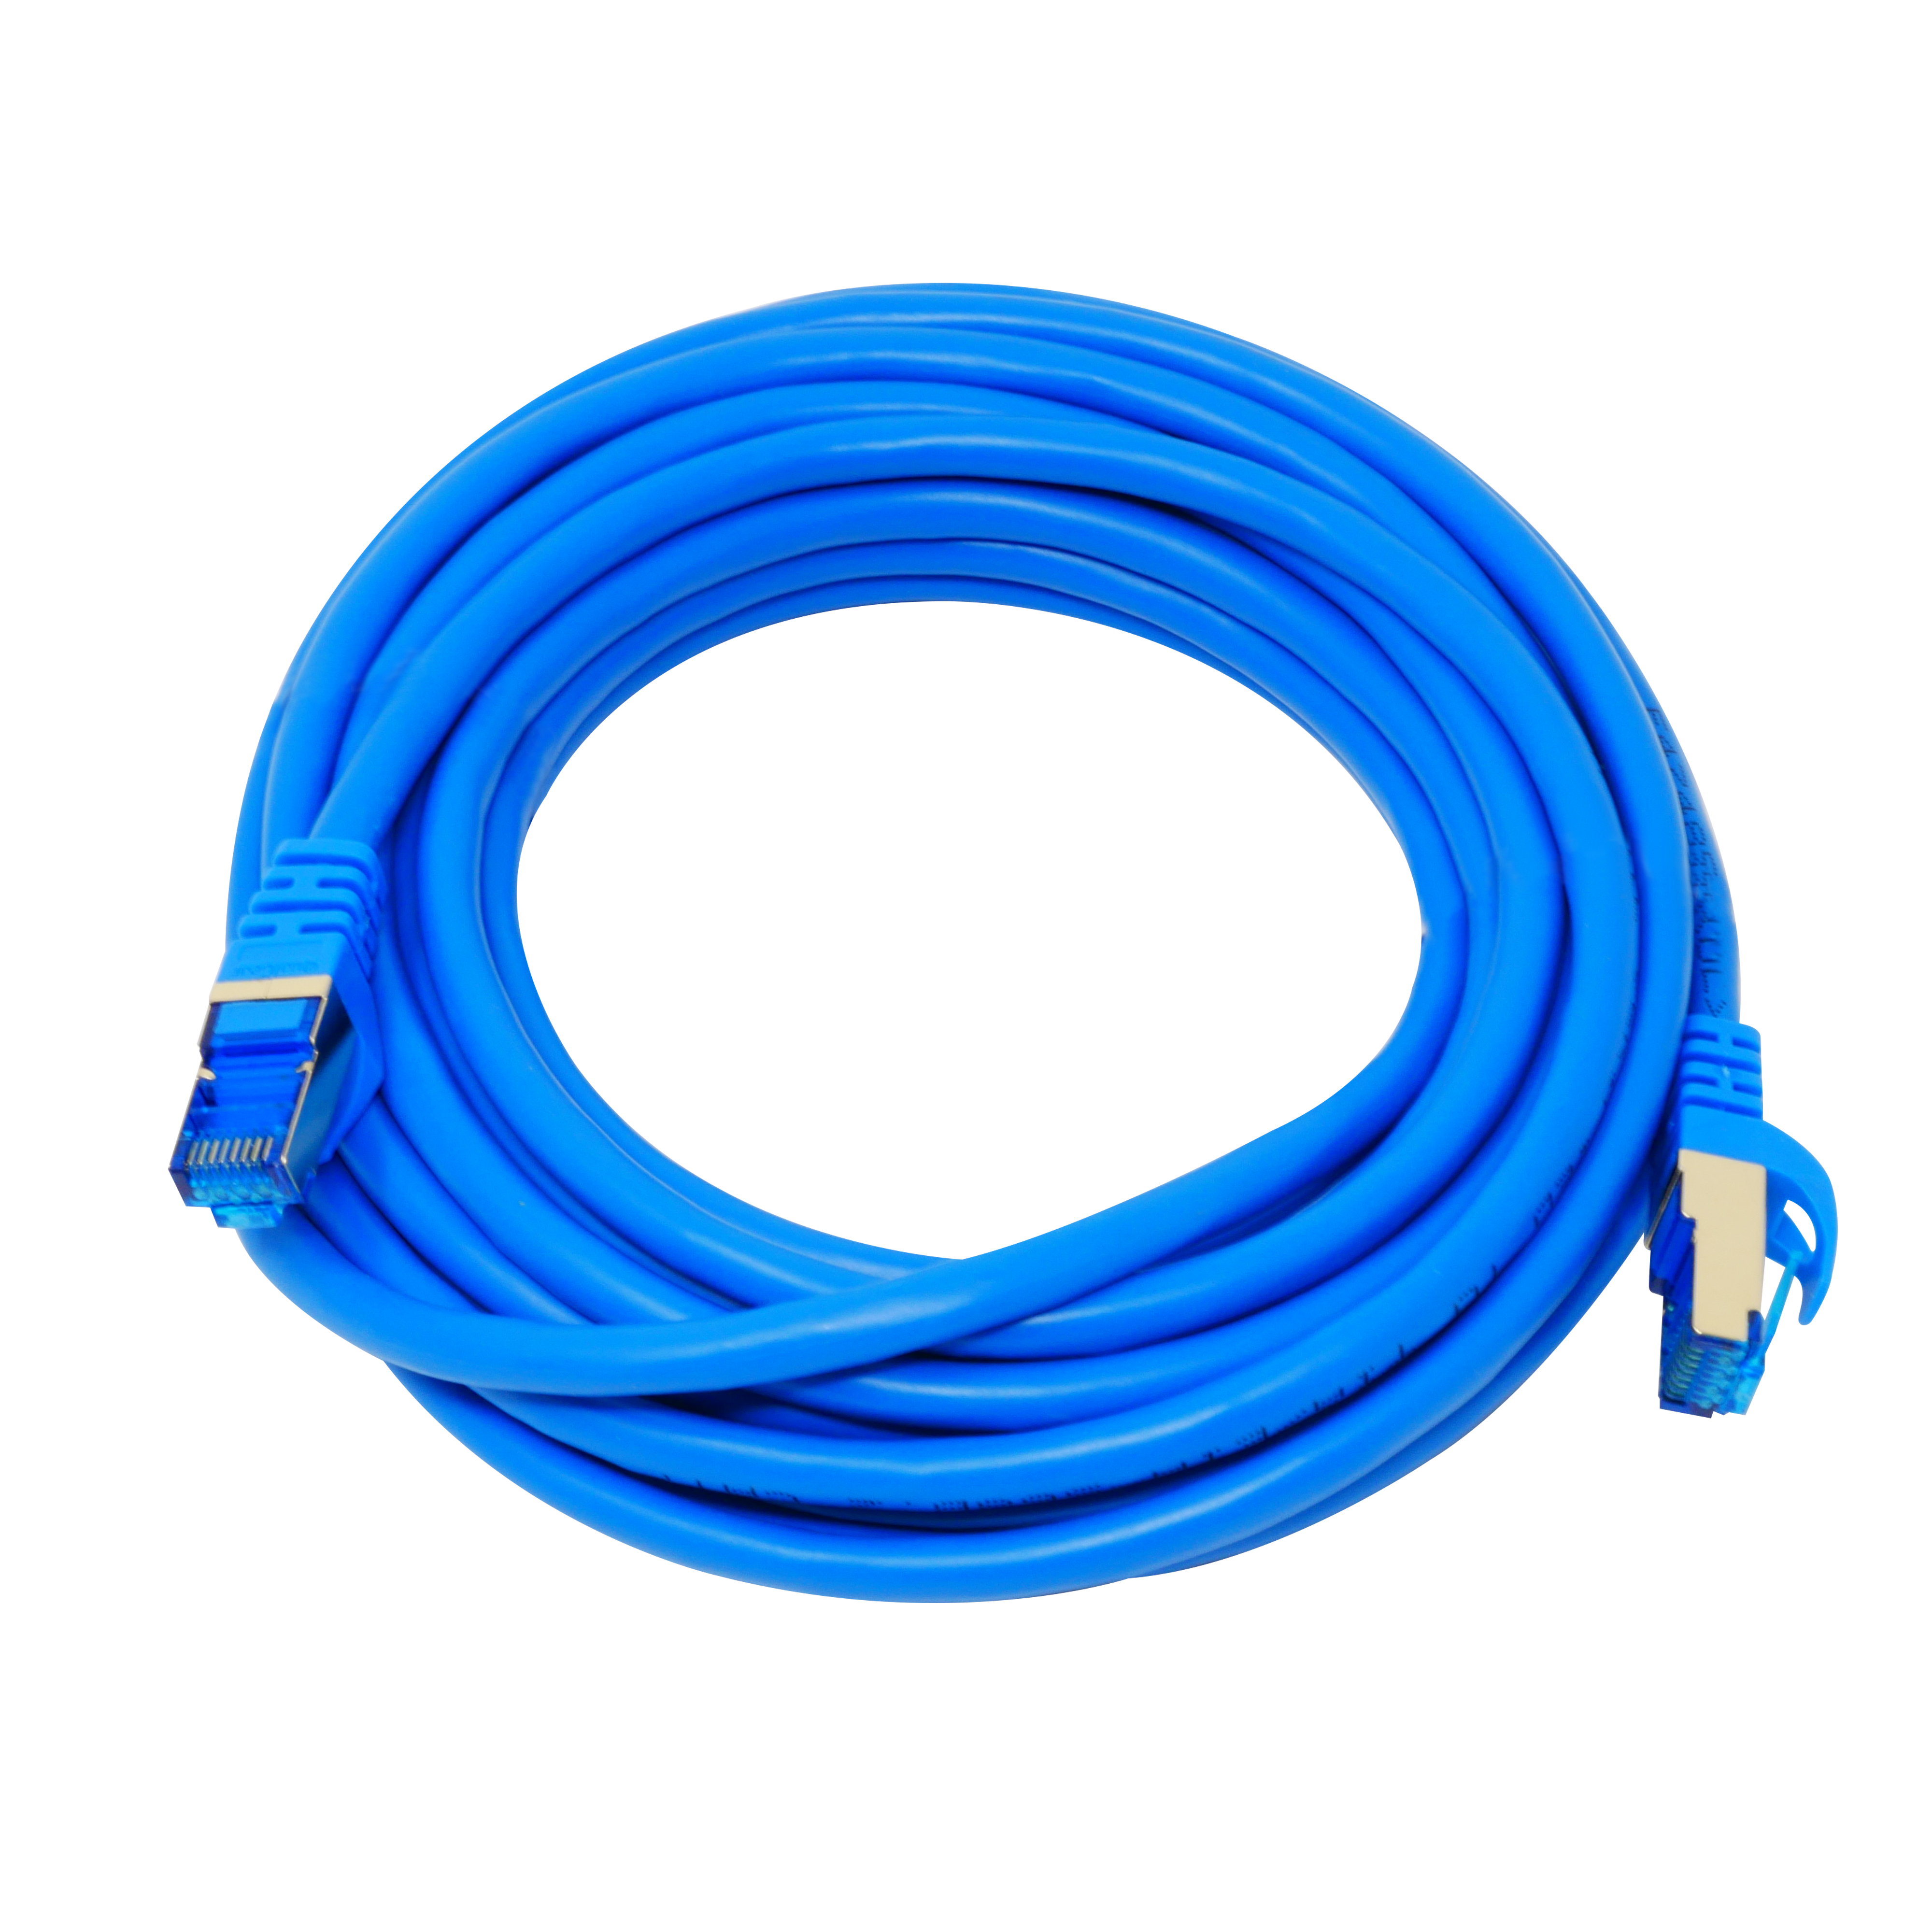 QualGear QG-CAT7R-20FT-BLU CAT 7 S/FTP Ethernet Cable Length 20 feet - 26 AWG, 10 Gbps, Gold Plated Contacts, RJ45, 99.99% OFC Copper, Color Blue